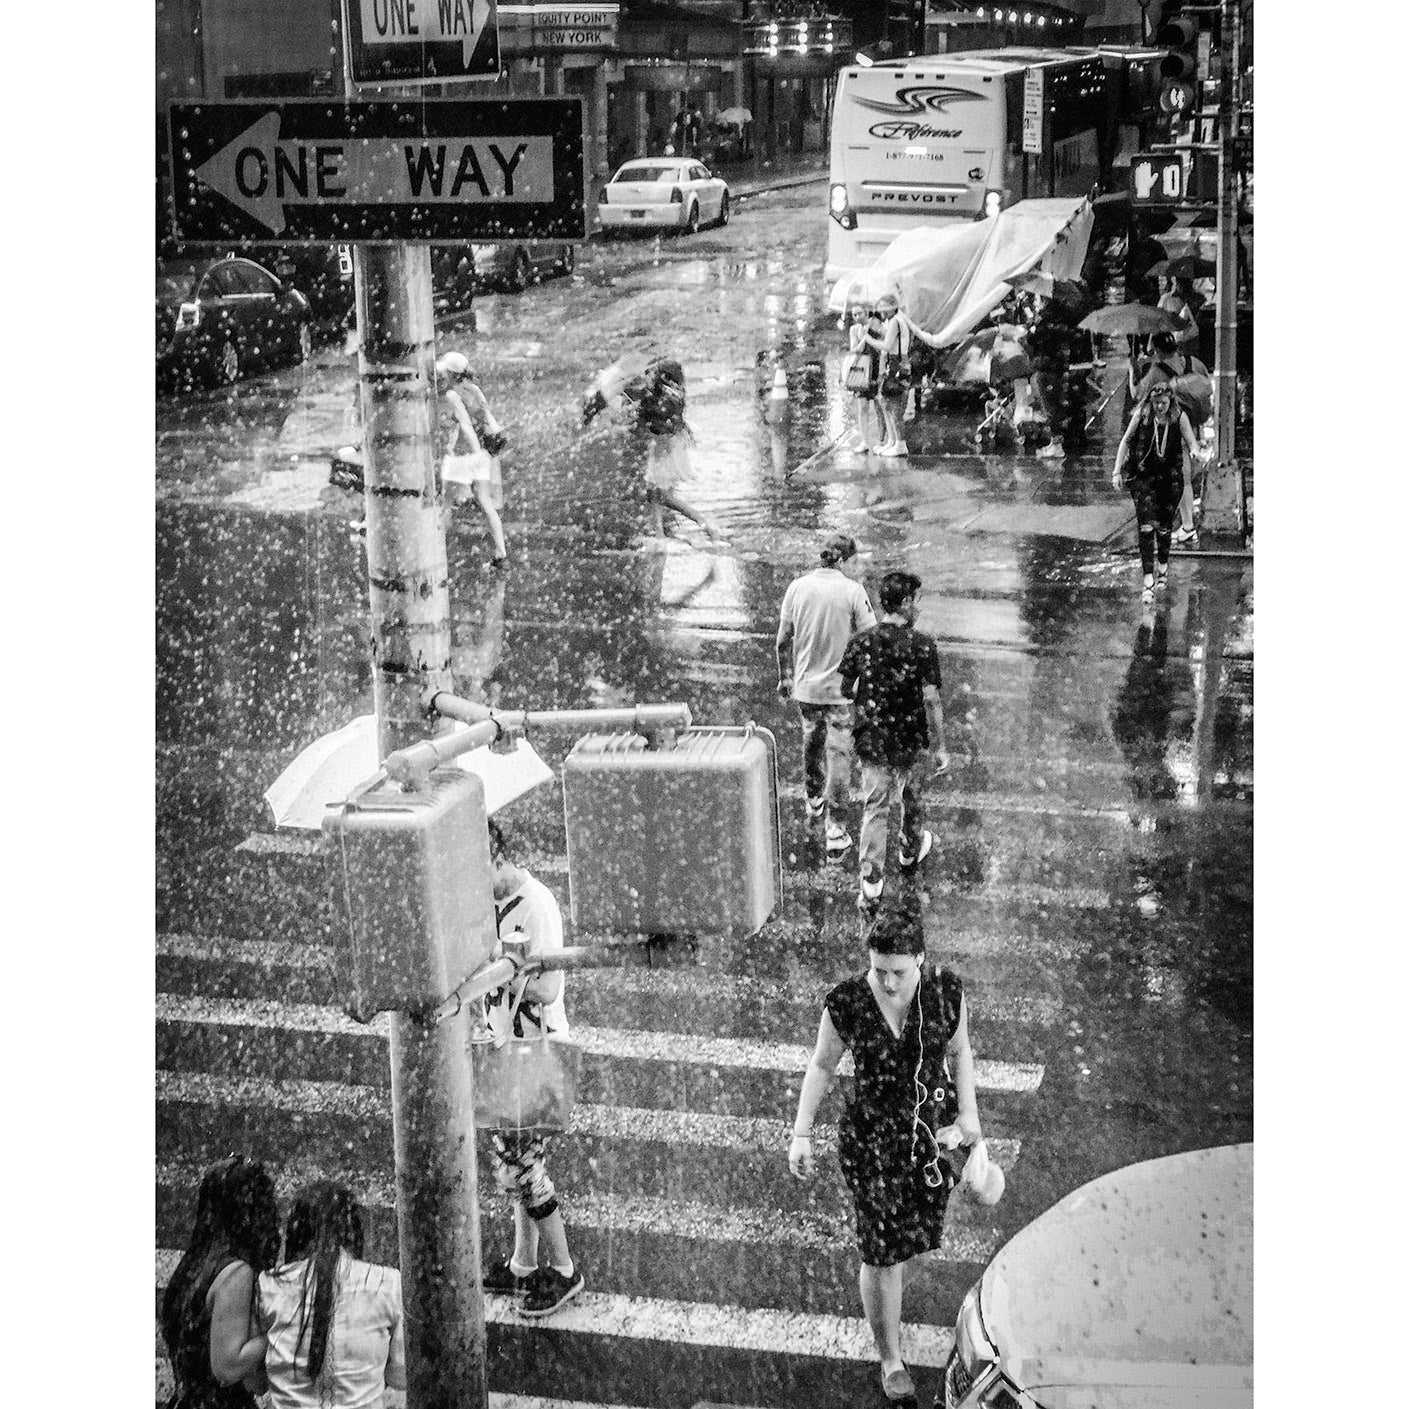 A black and white photography fine art print of a New York Street with various people crossing the road while it is raining.